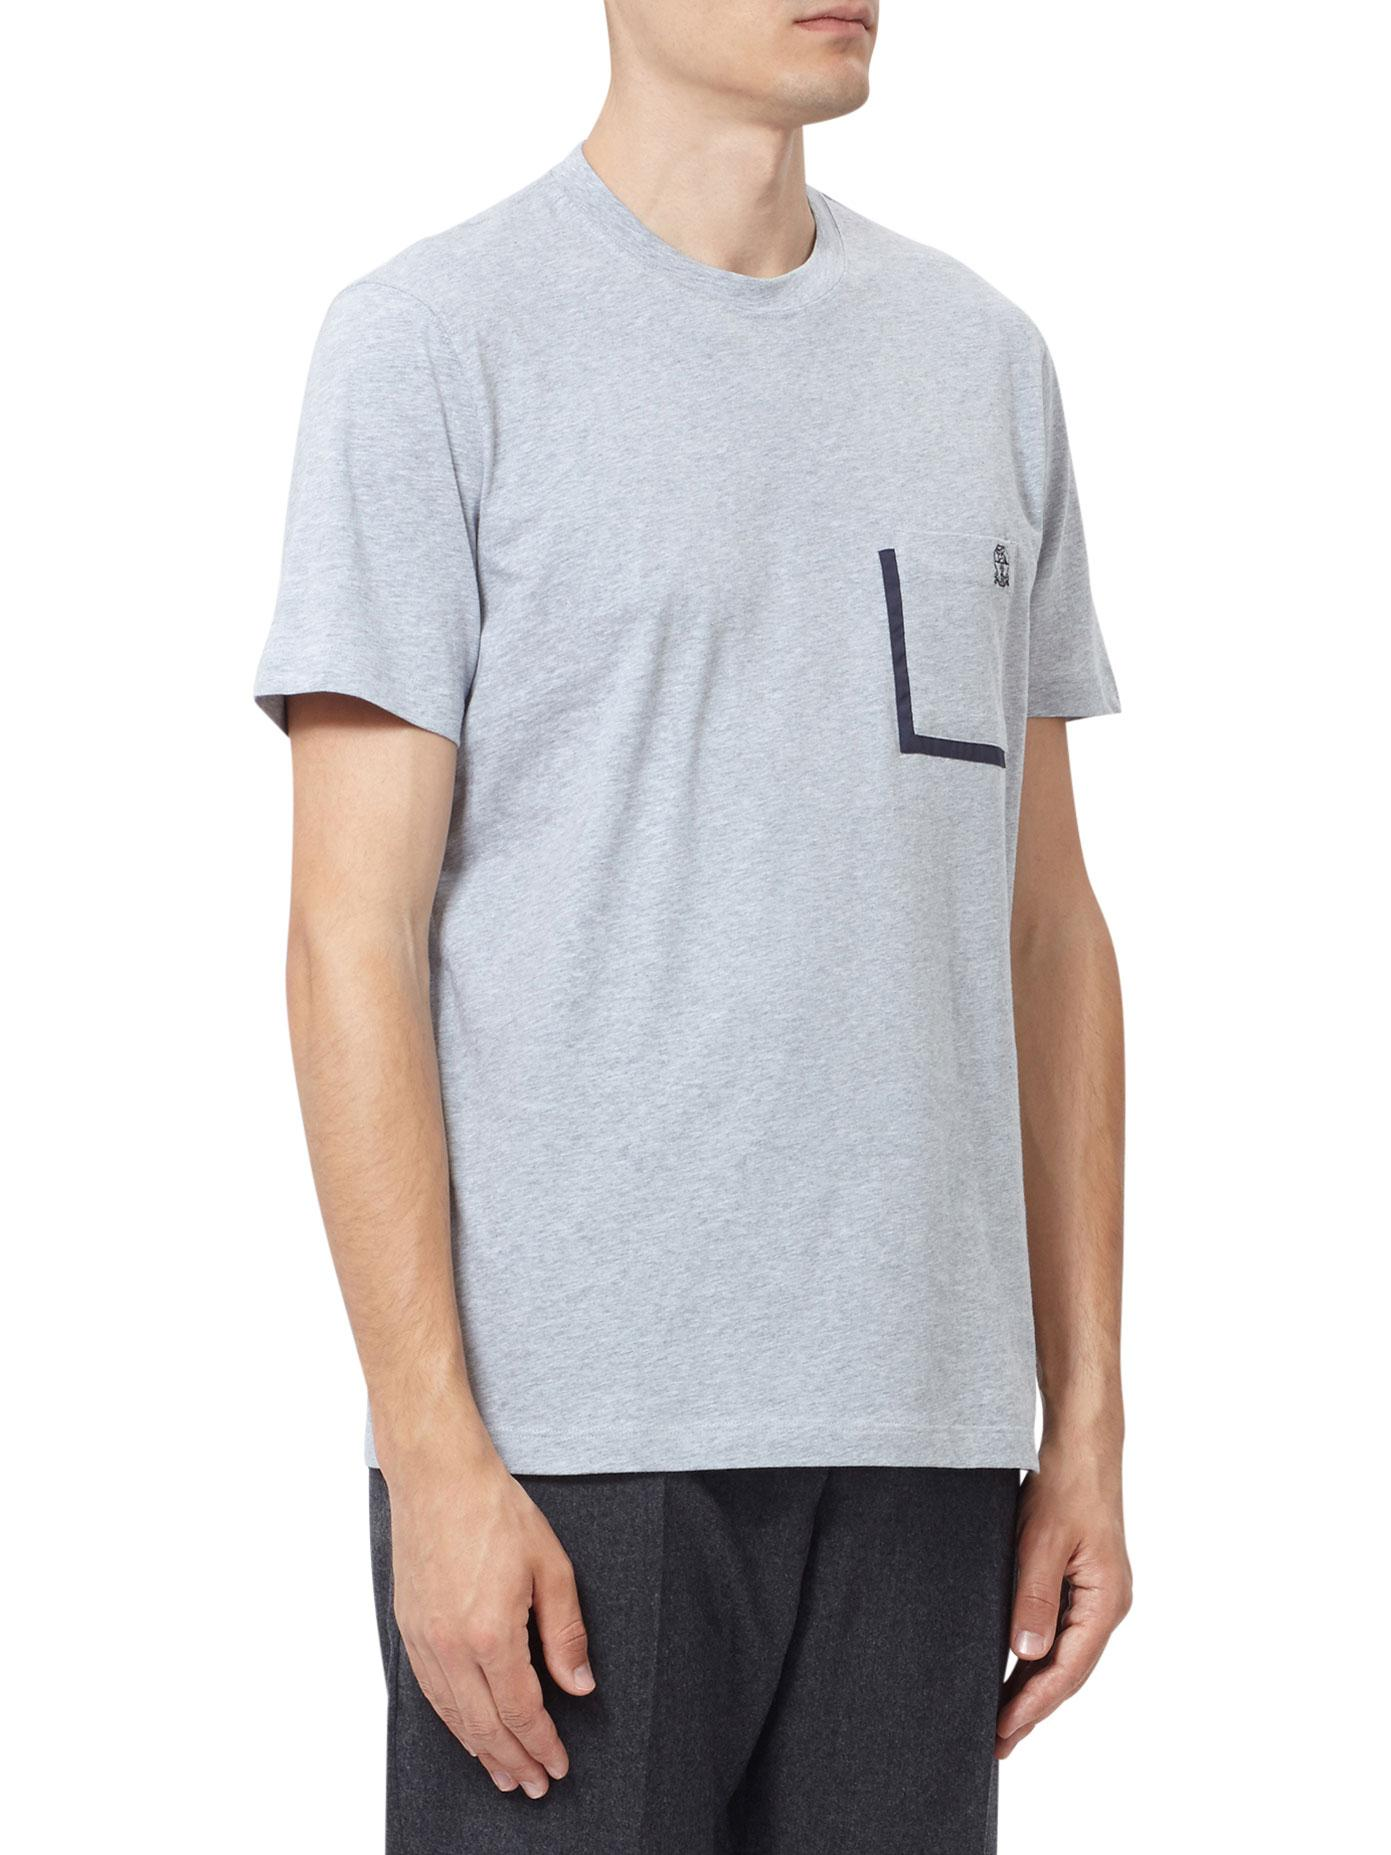 68f33270 Lyst - Brunello Cucinelli Cotton Logo Pocket T-shirt in Gray for Men